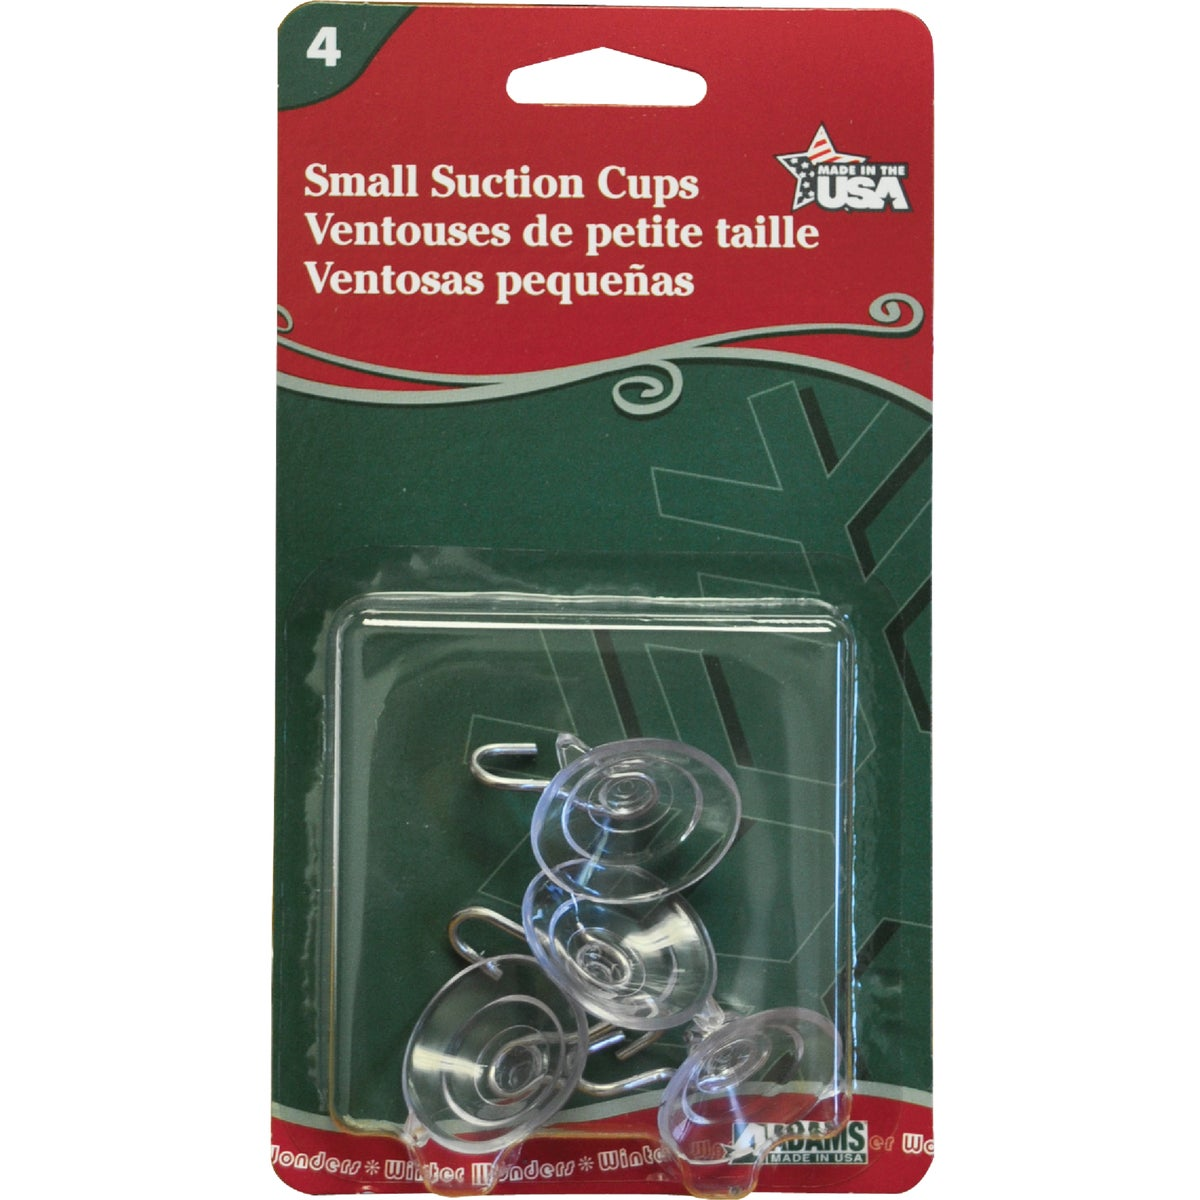 "SML 1-1/8"" SUCTION CUP"